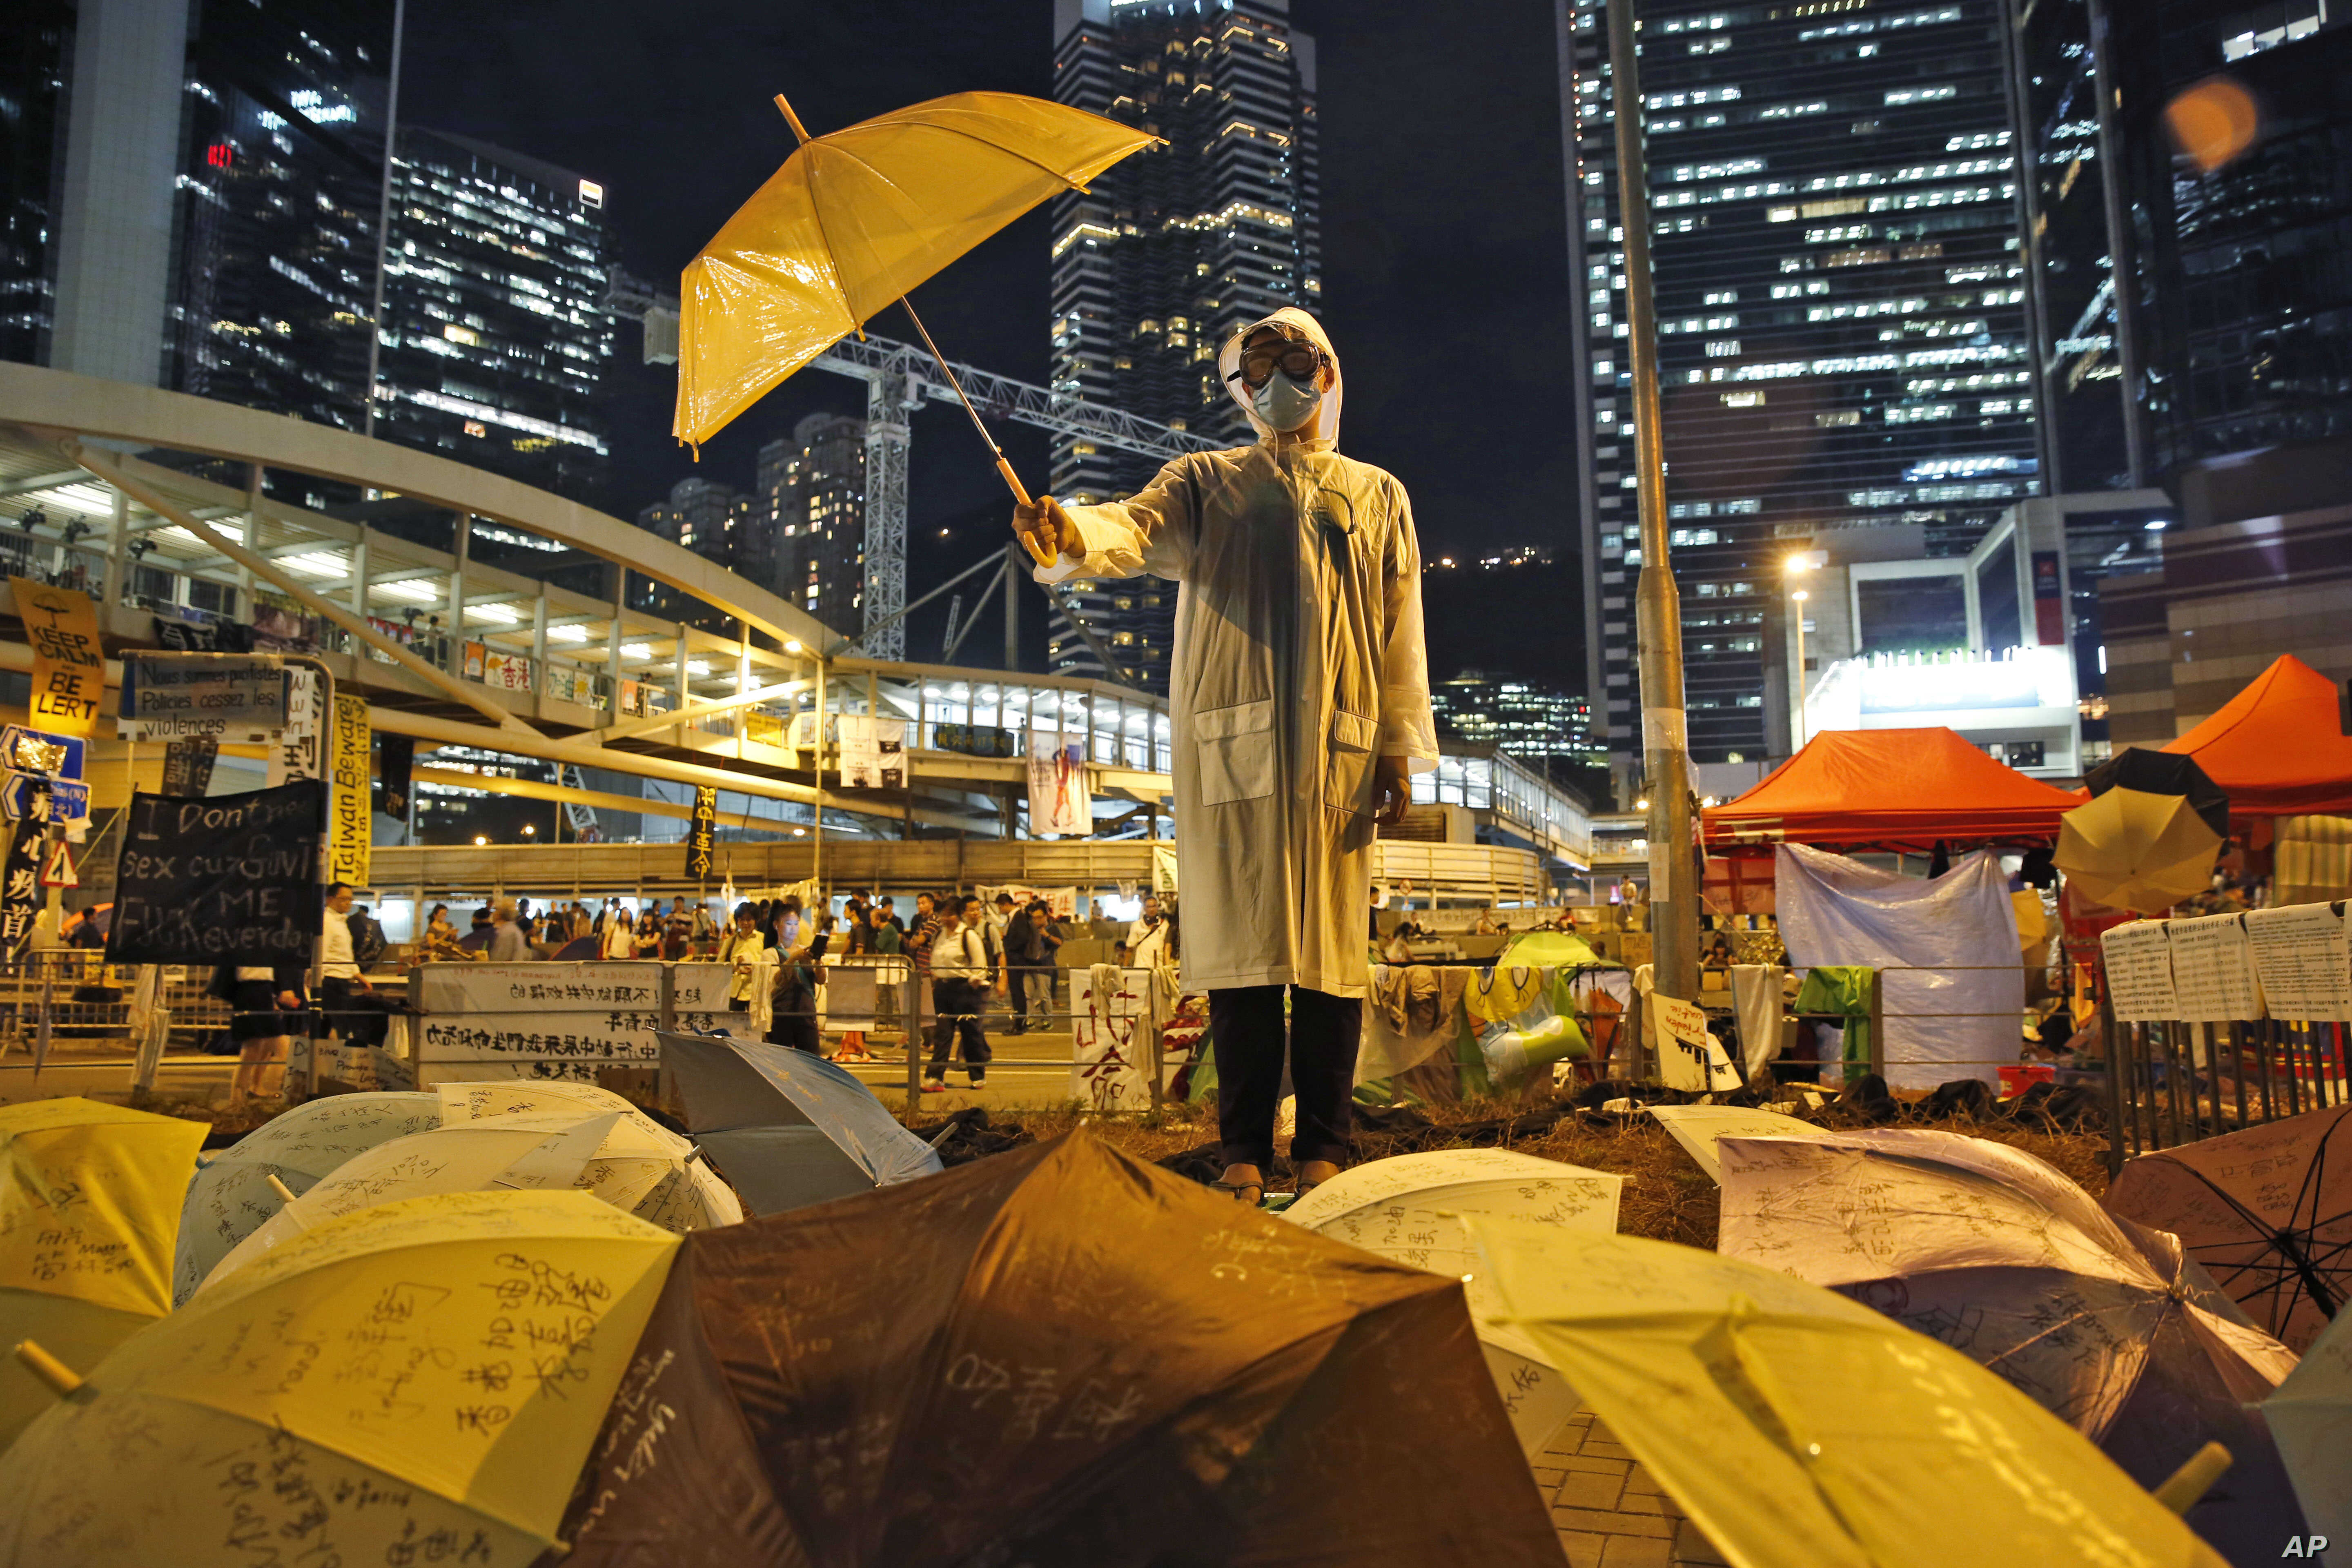 A protester holds an umbrella during a performance on a main road in the occupied areas outside government headquarters in Hong Kong's Admiralty in Hong Kong, Oct. 9, 2014.